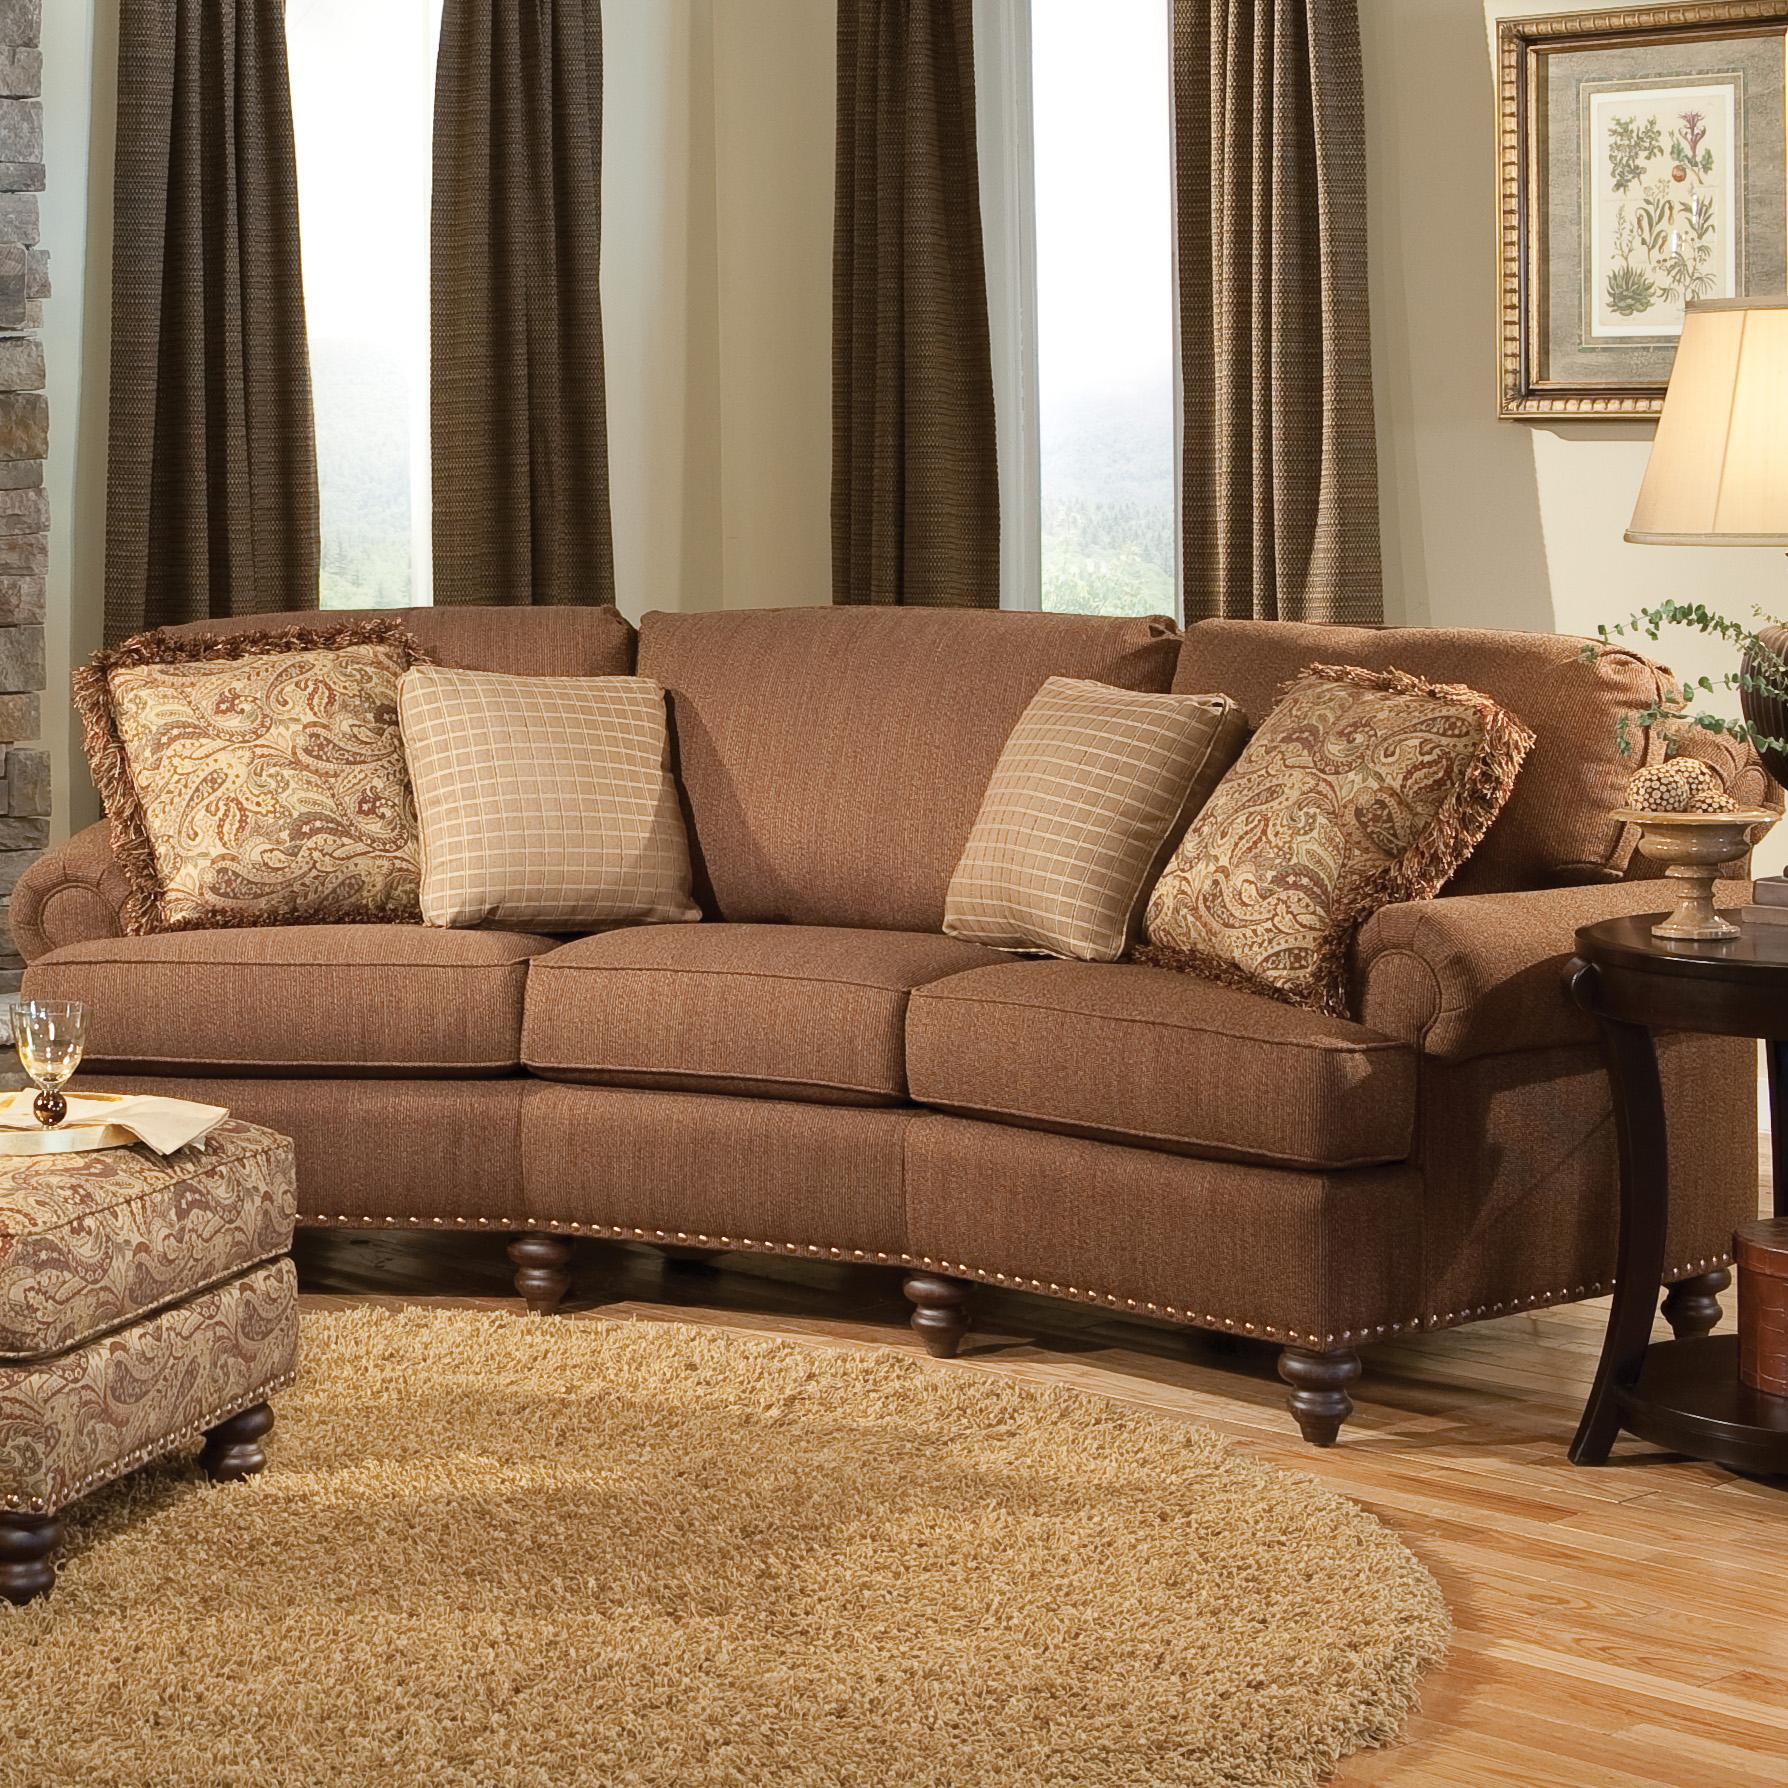 Nice Curved Conversational Sofa With Nailhead Trim